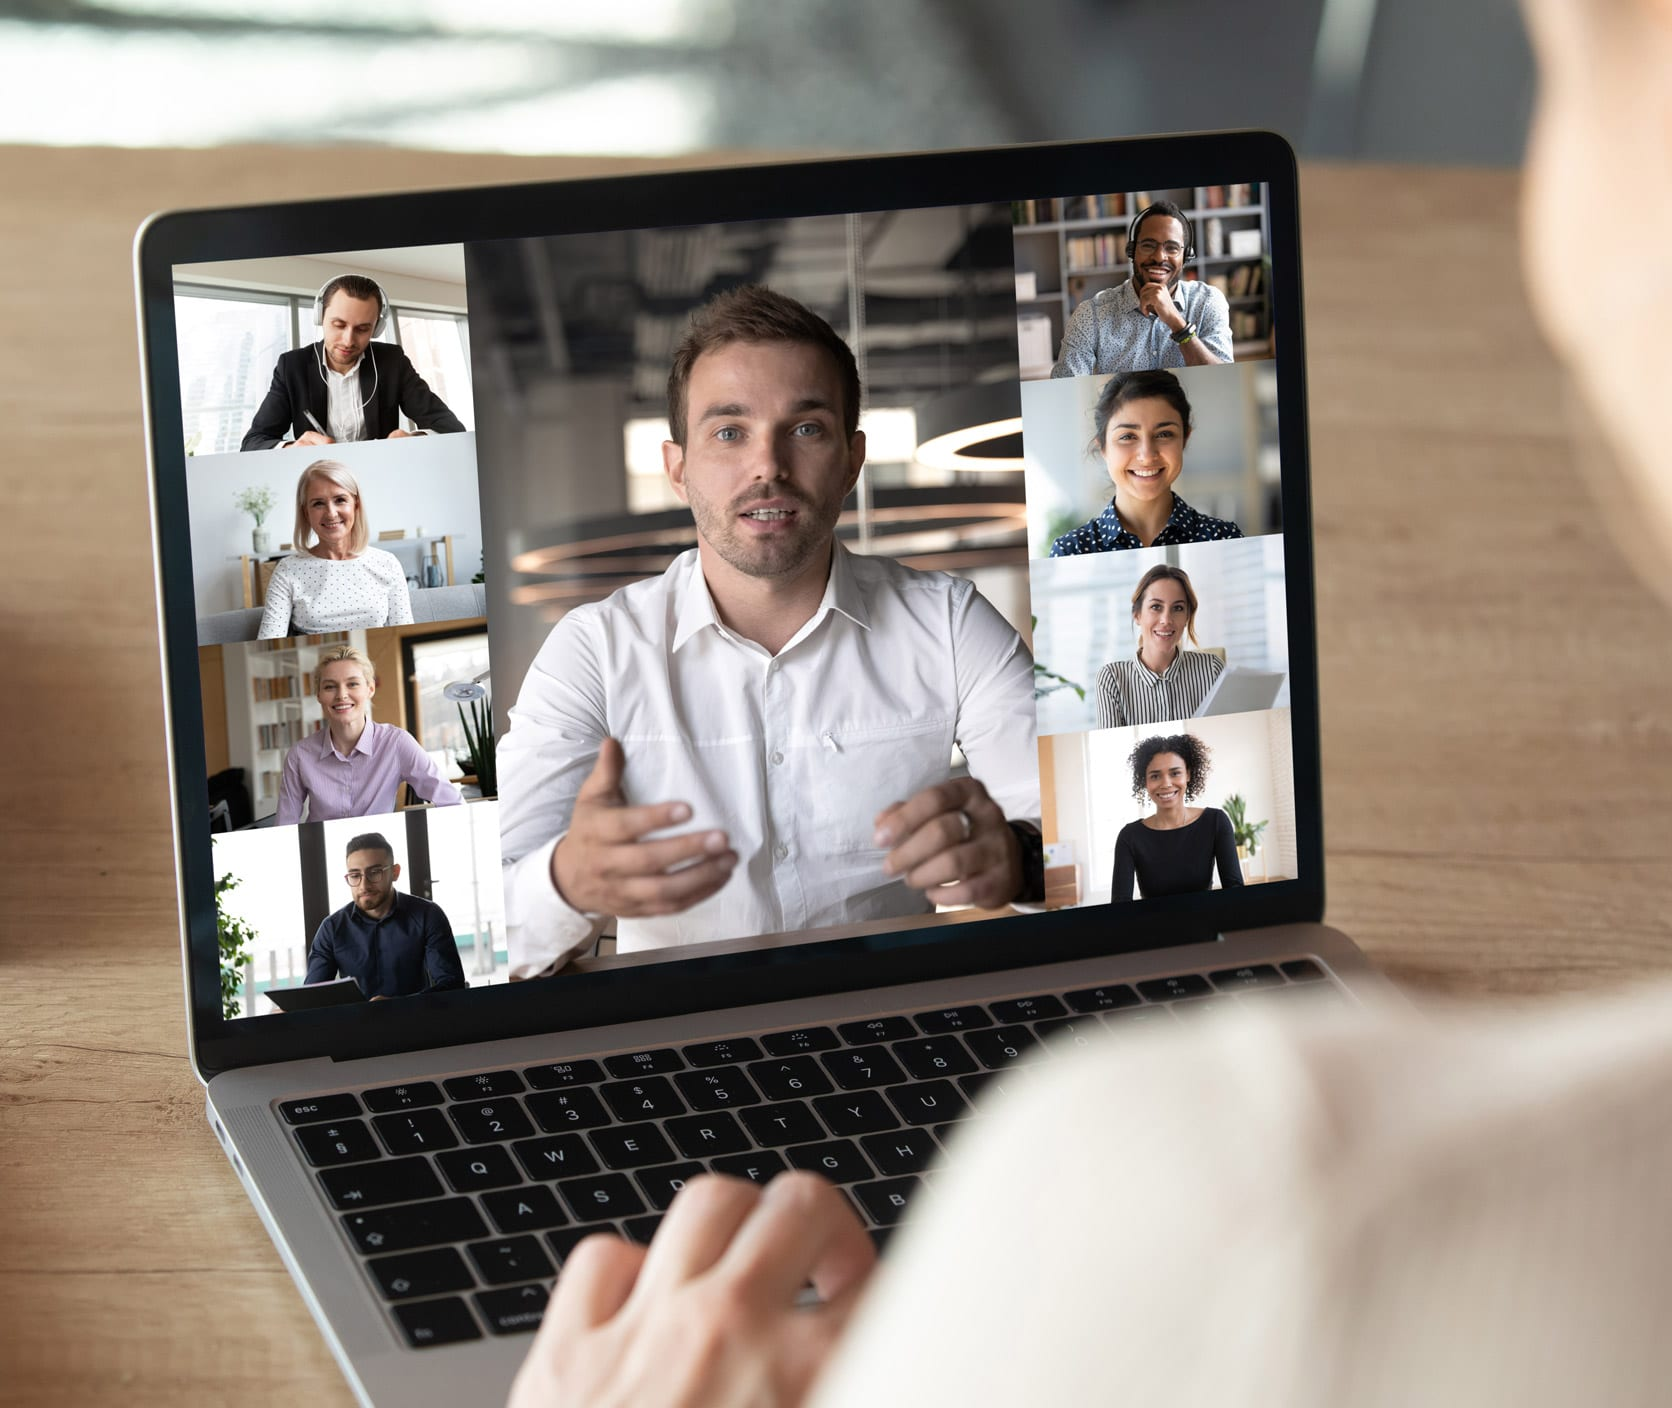 video meeting on laptop with man speaking to everyone